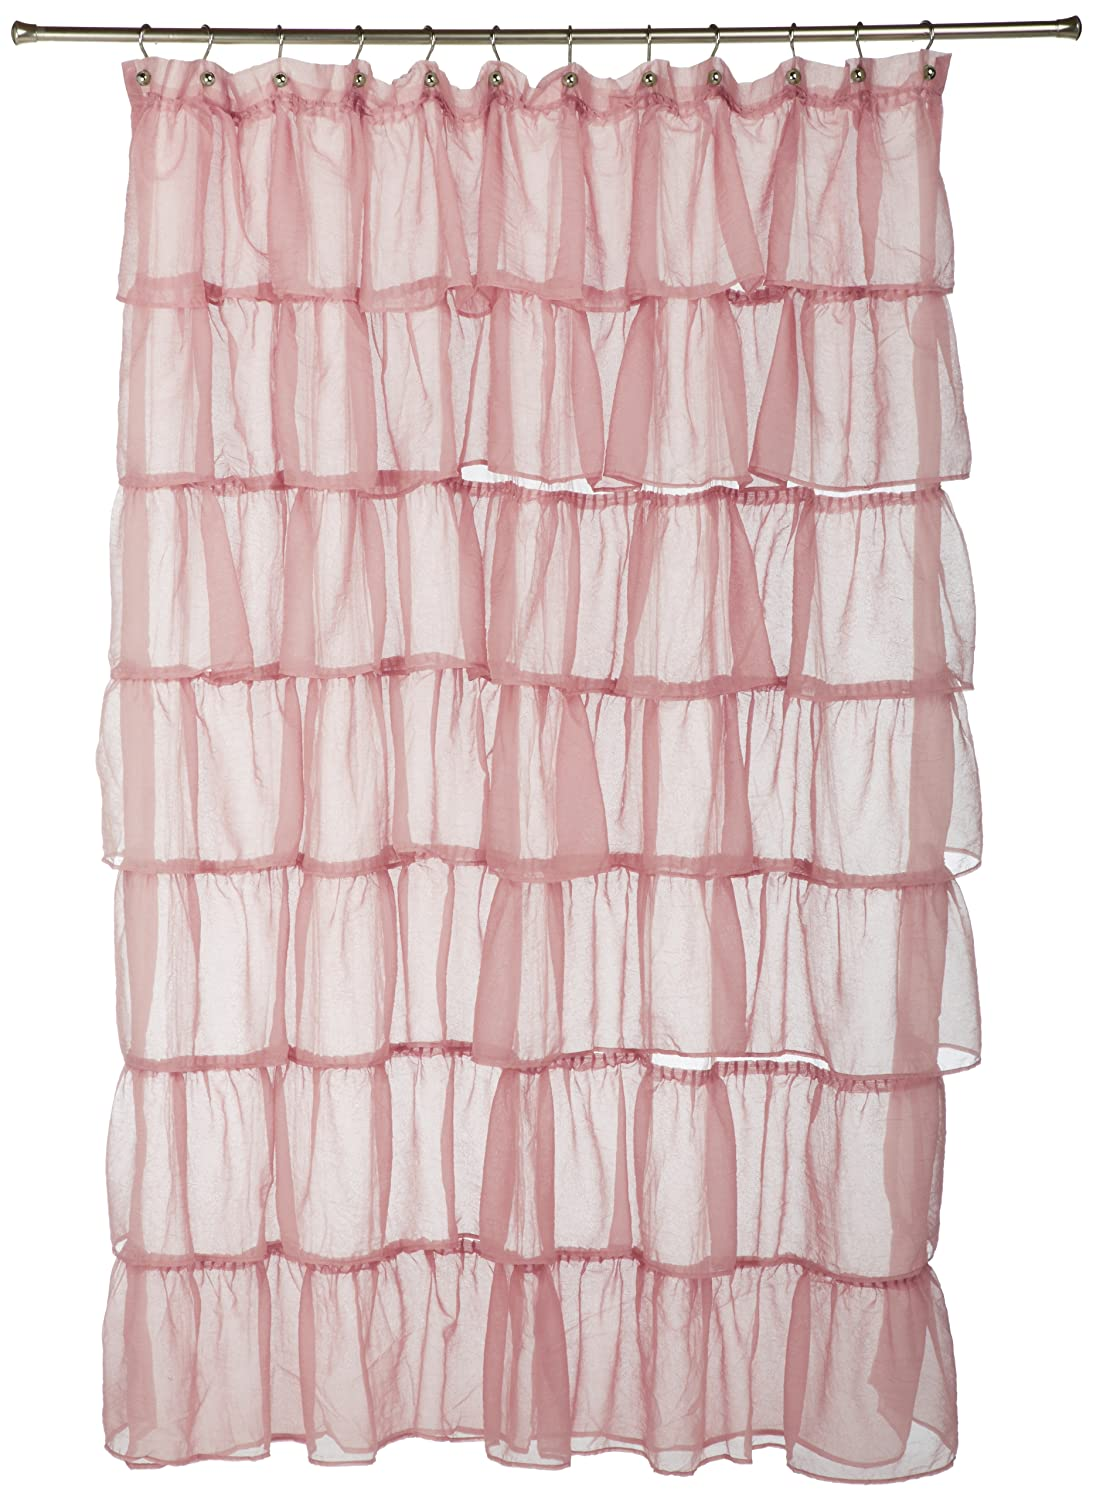 Amazon com  Lorraine Home Fashions Gypsy Shower Curtain  70 Inch by  72 Inch  Pink  Home   KitchenAmazon com  Lorraine Home Fashions Gypsy Shower Curtain  70 Inch  . Pale Pink Shower Curtain. Home Design Ideas